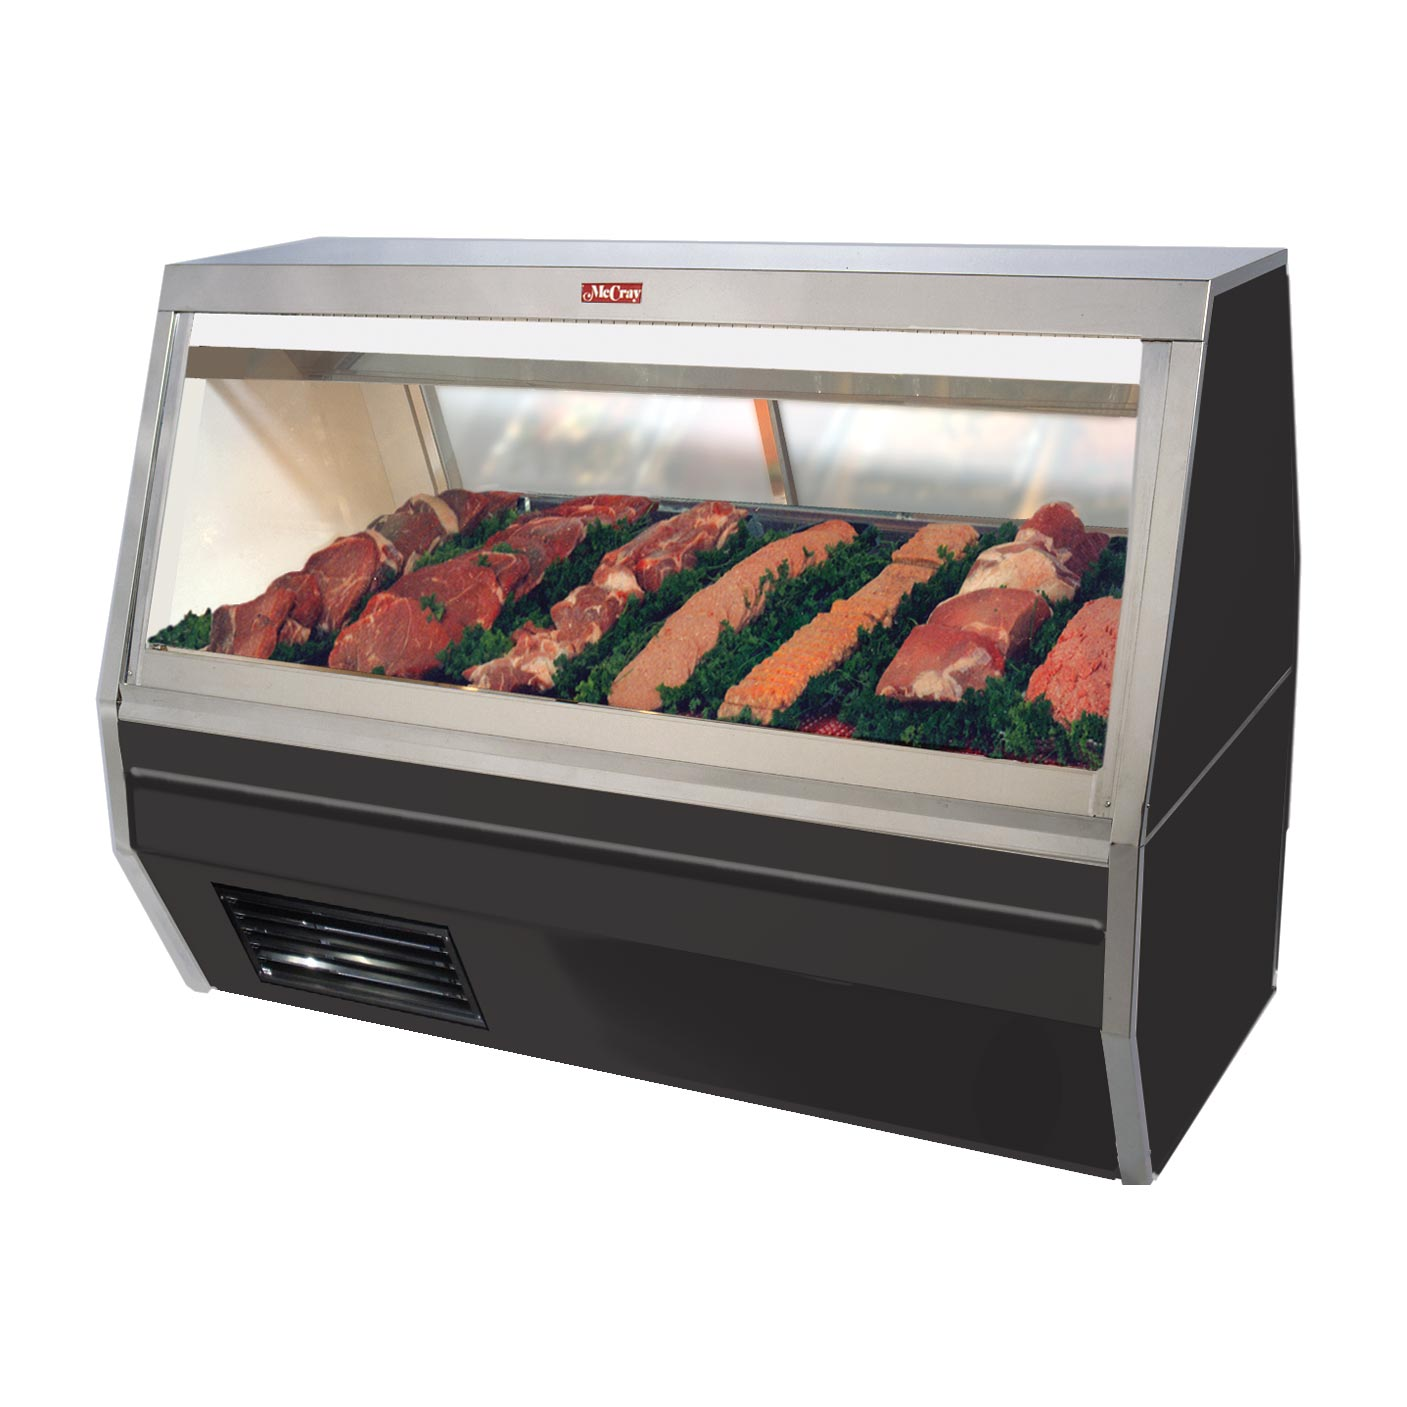 Howard-McCray SC-CMS35-6-BE-LED display case, red meat deli